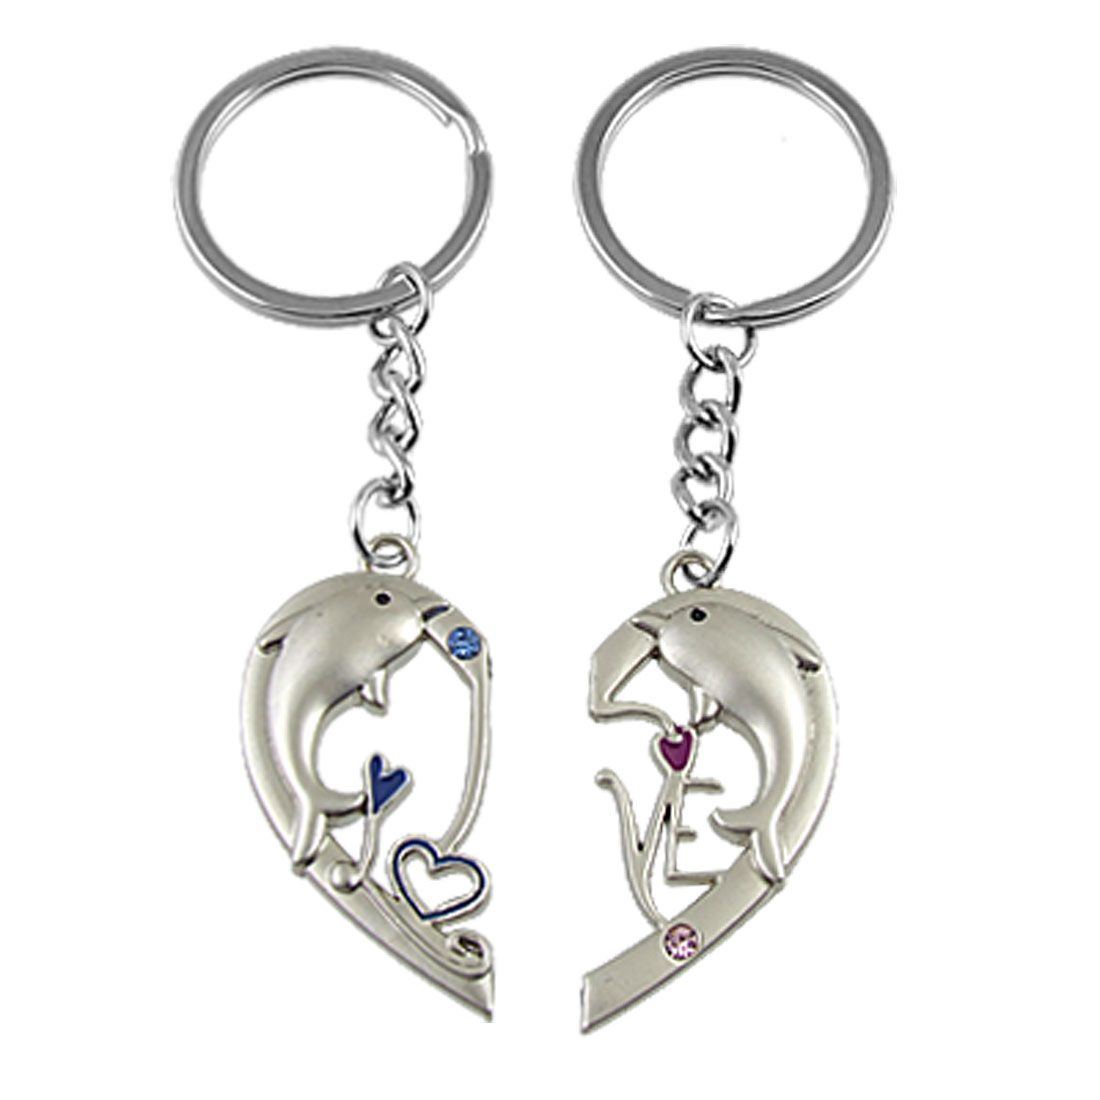 Heart Shaped Dolphin Accent Couple Keyring Key Ring